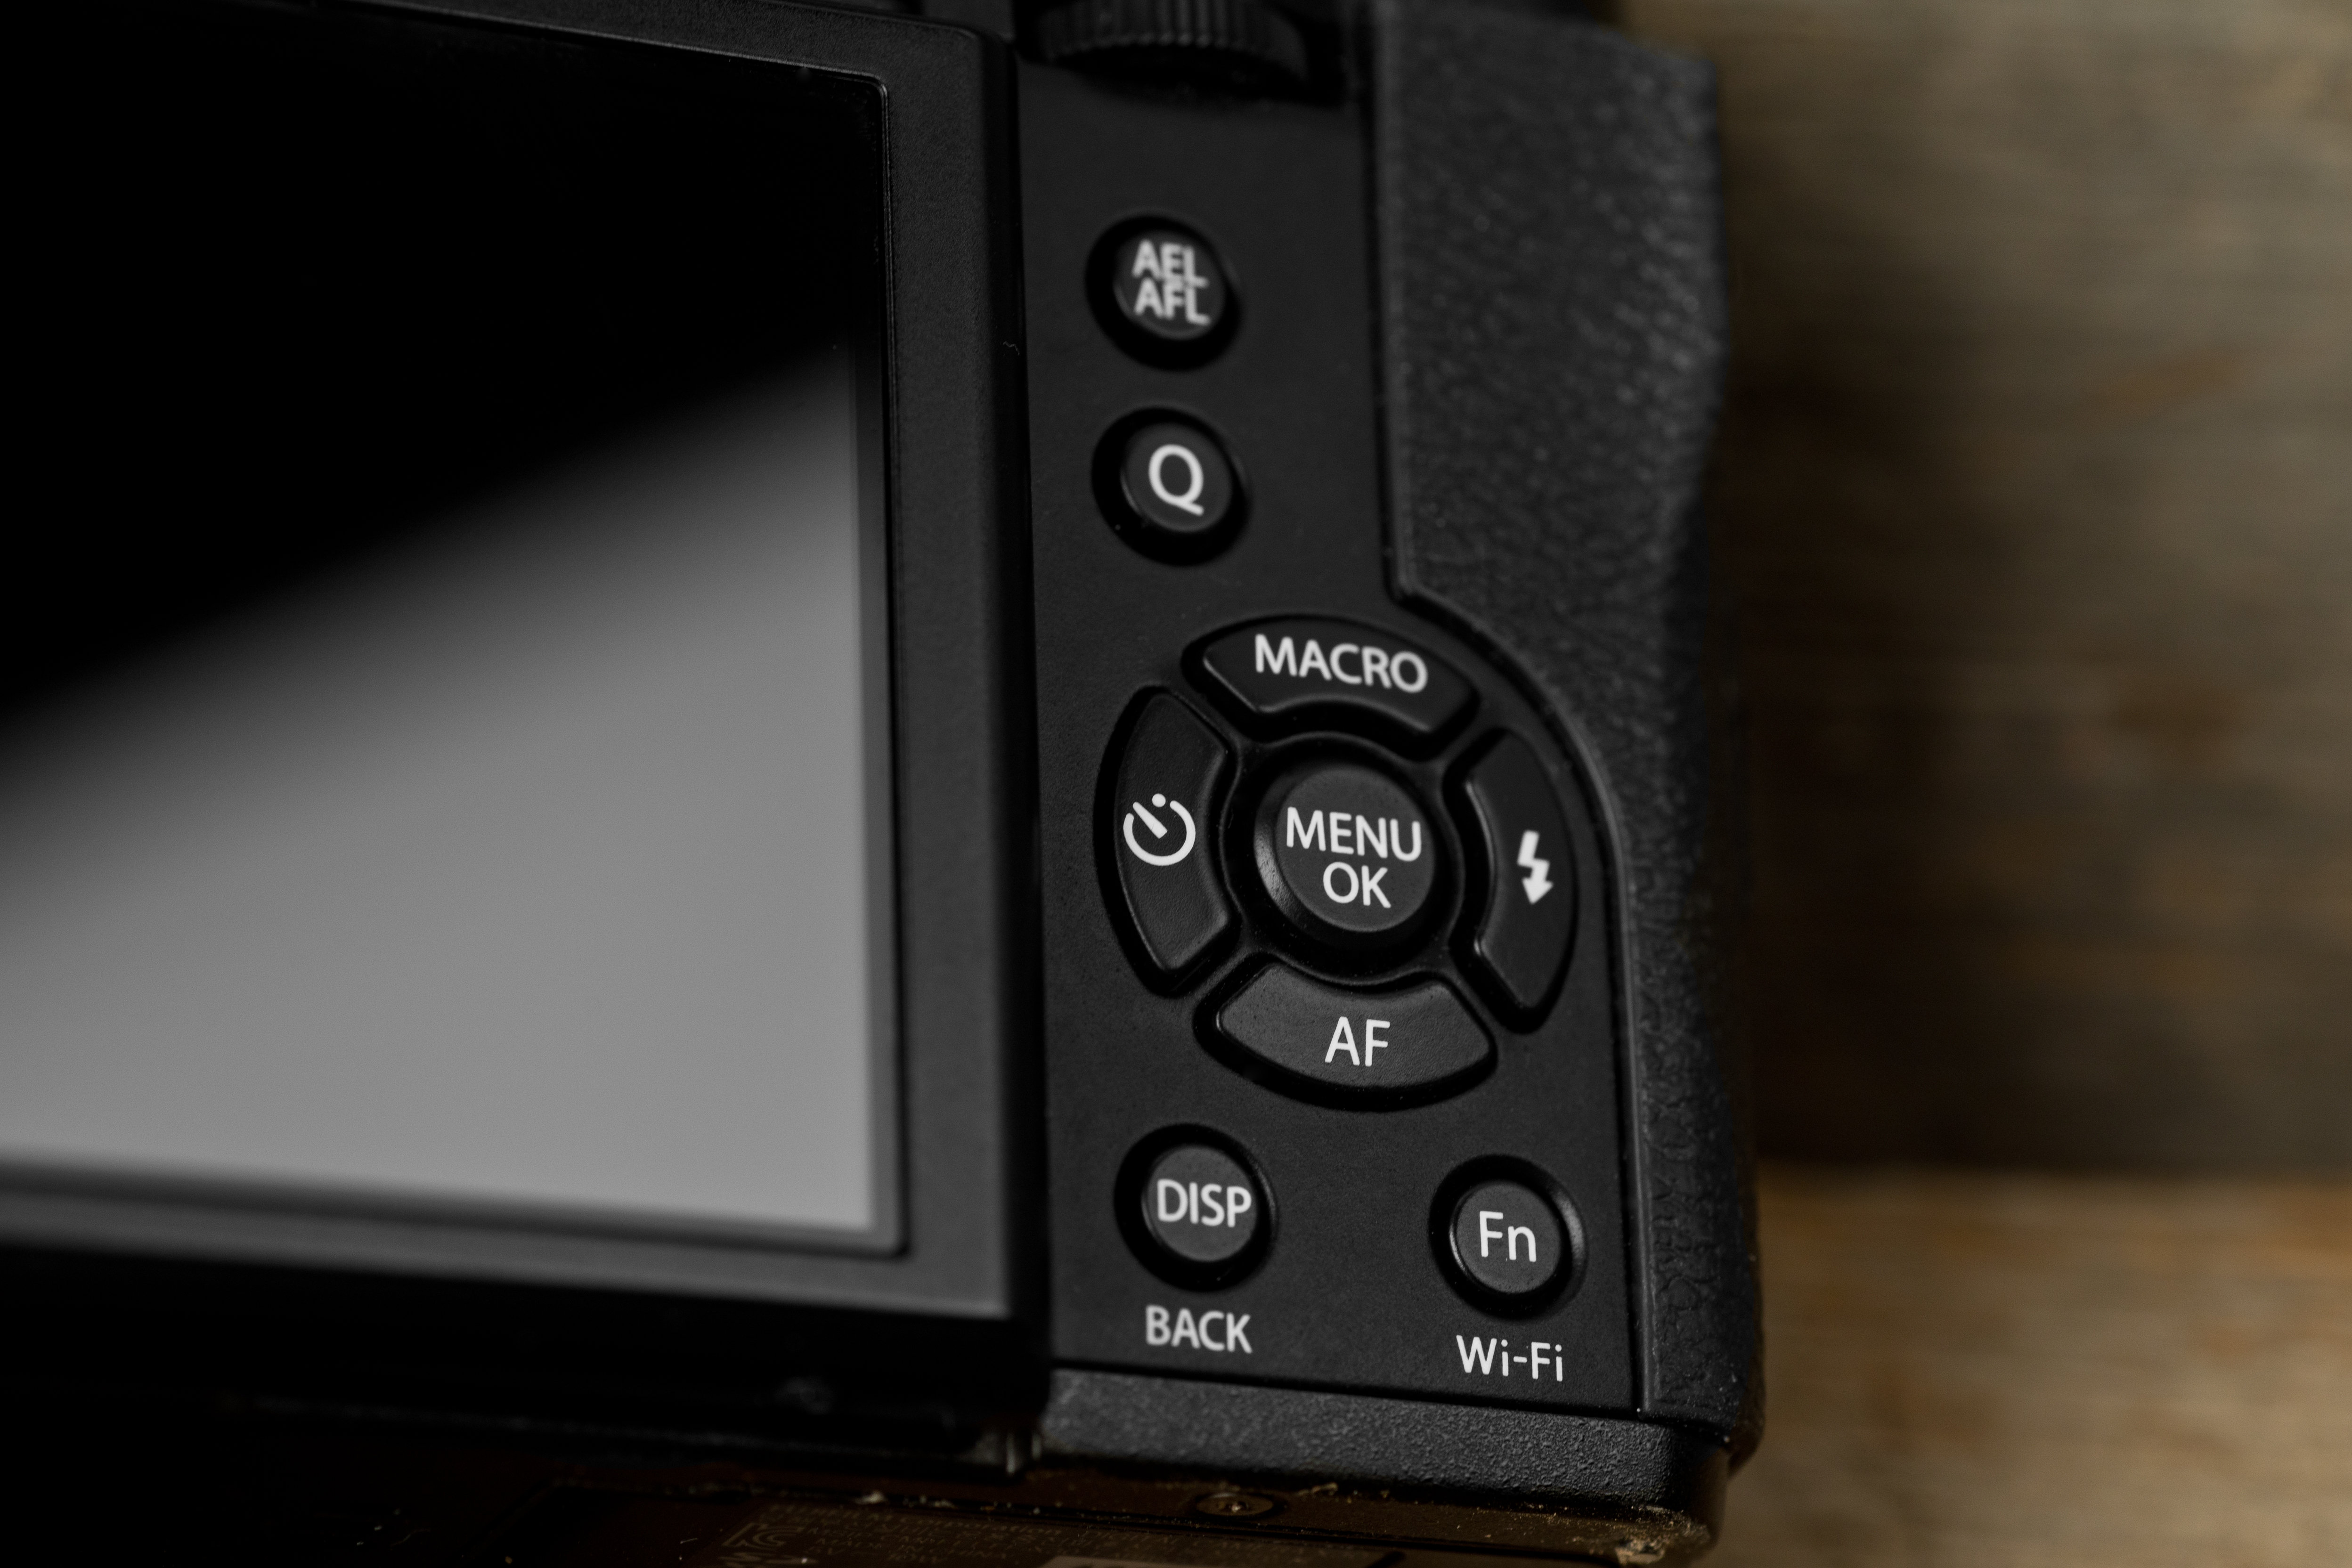 A photo of the Fujifilm X30's rear control cluster.